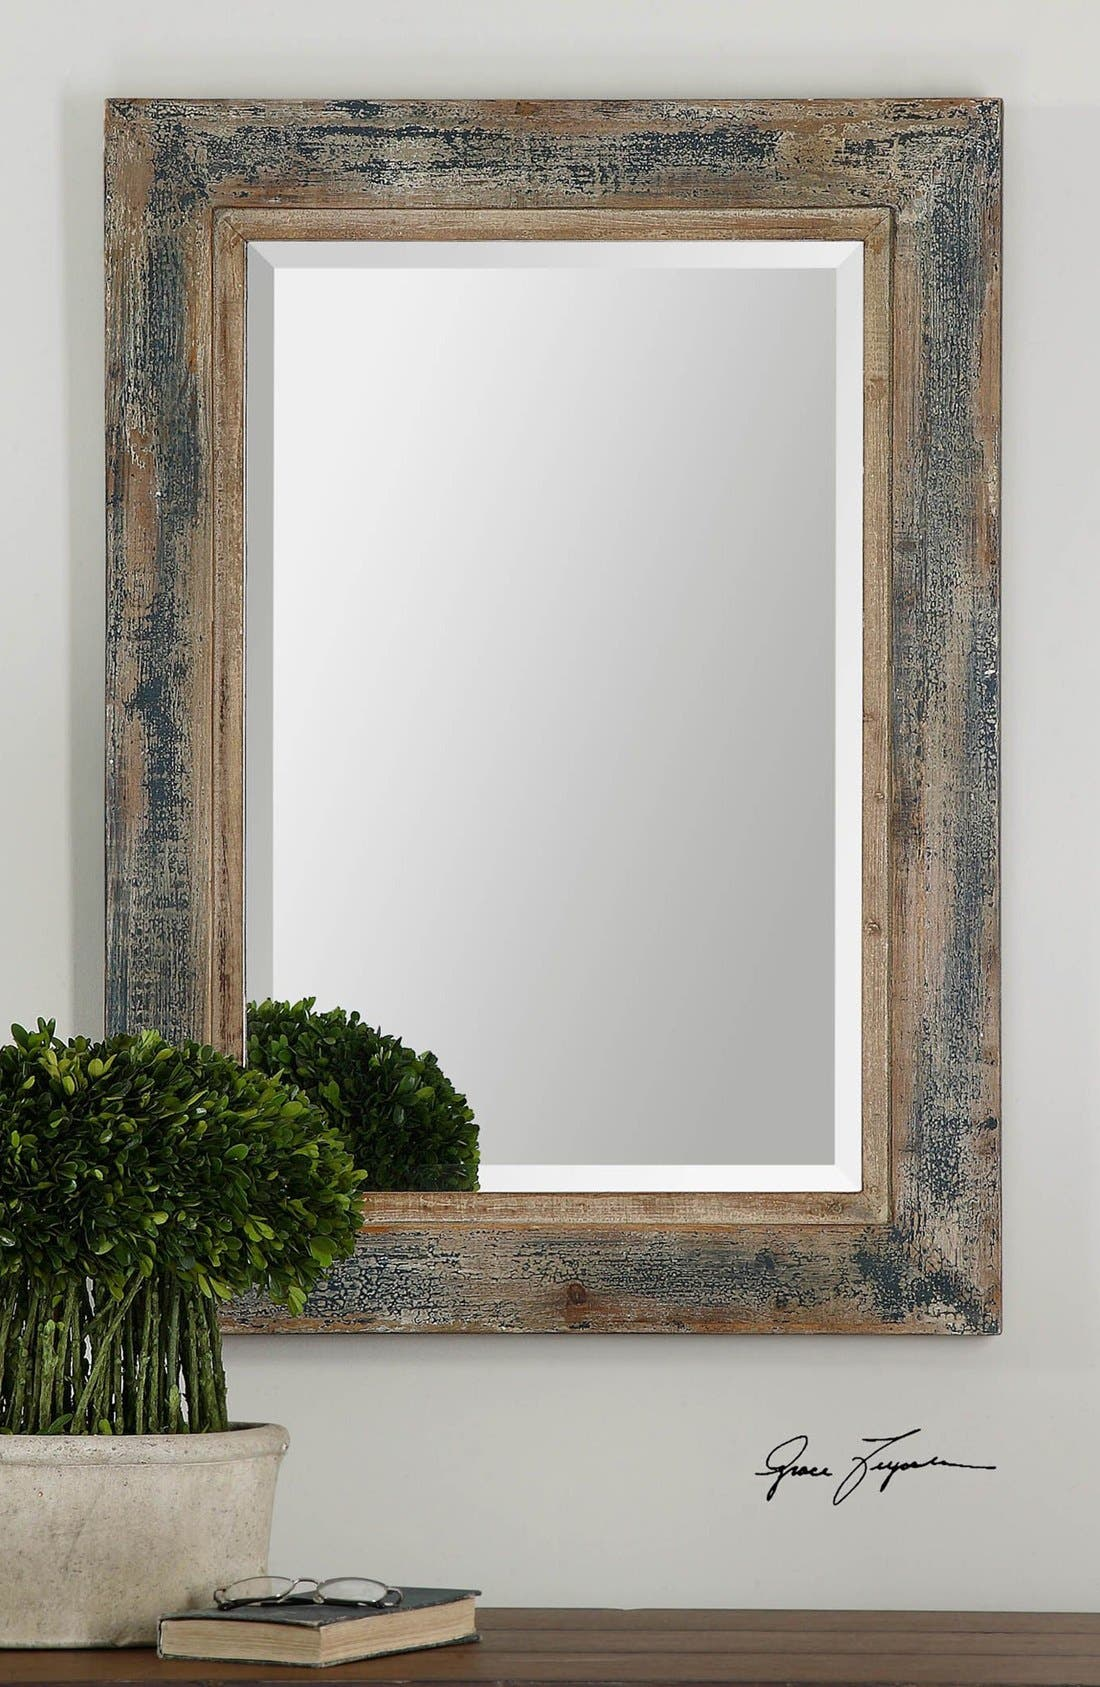 'Bozeman' Distressed Wooden Mirror,                             Alternate thumbnail 3, color,                             400